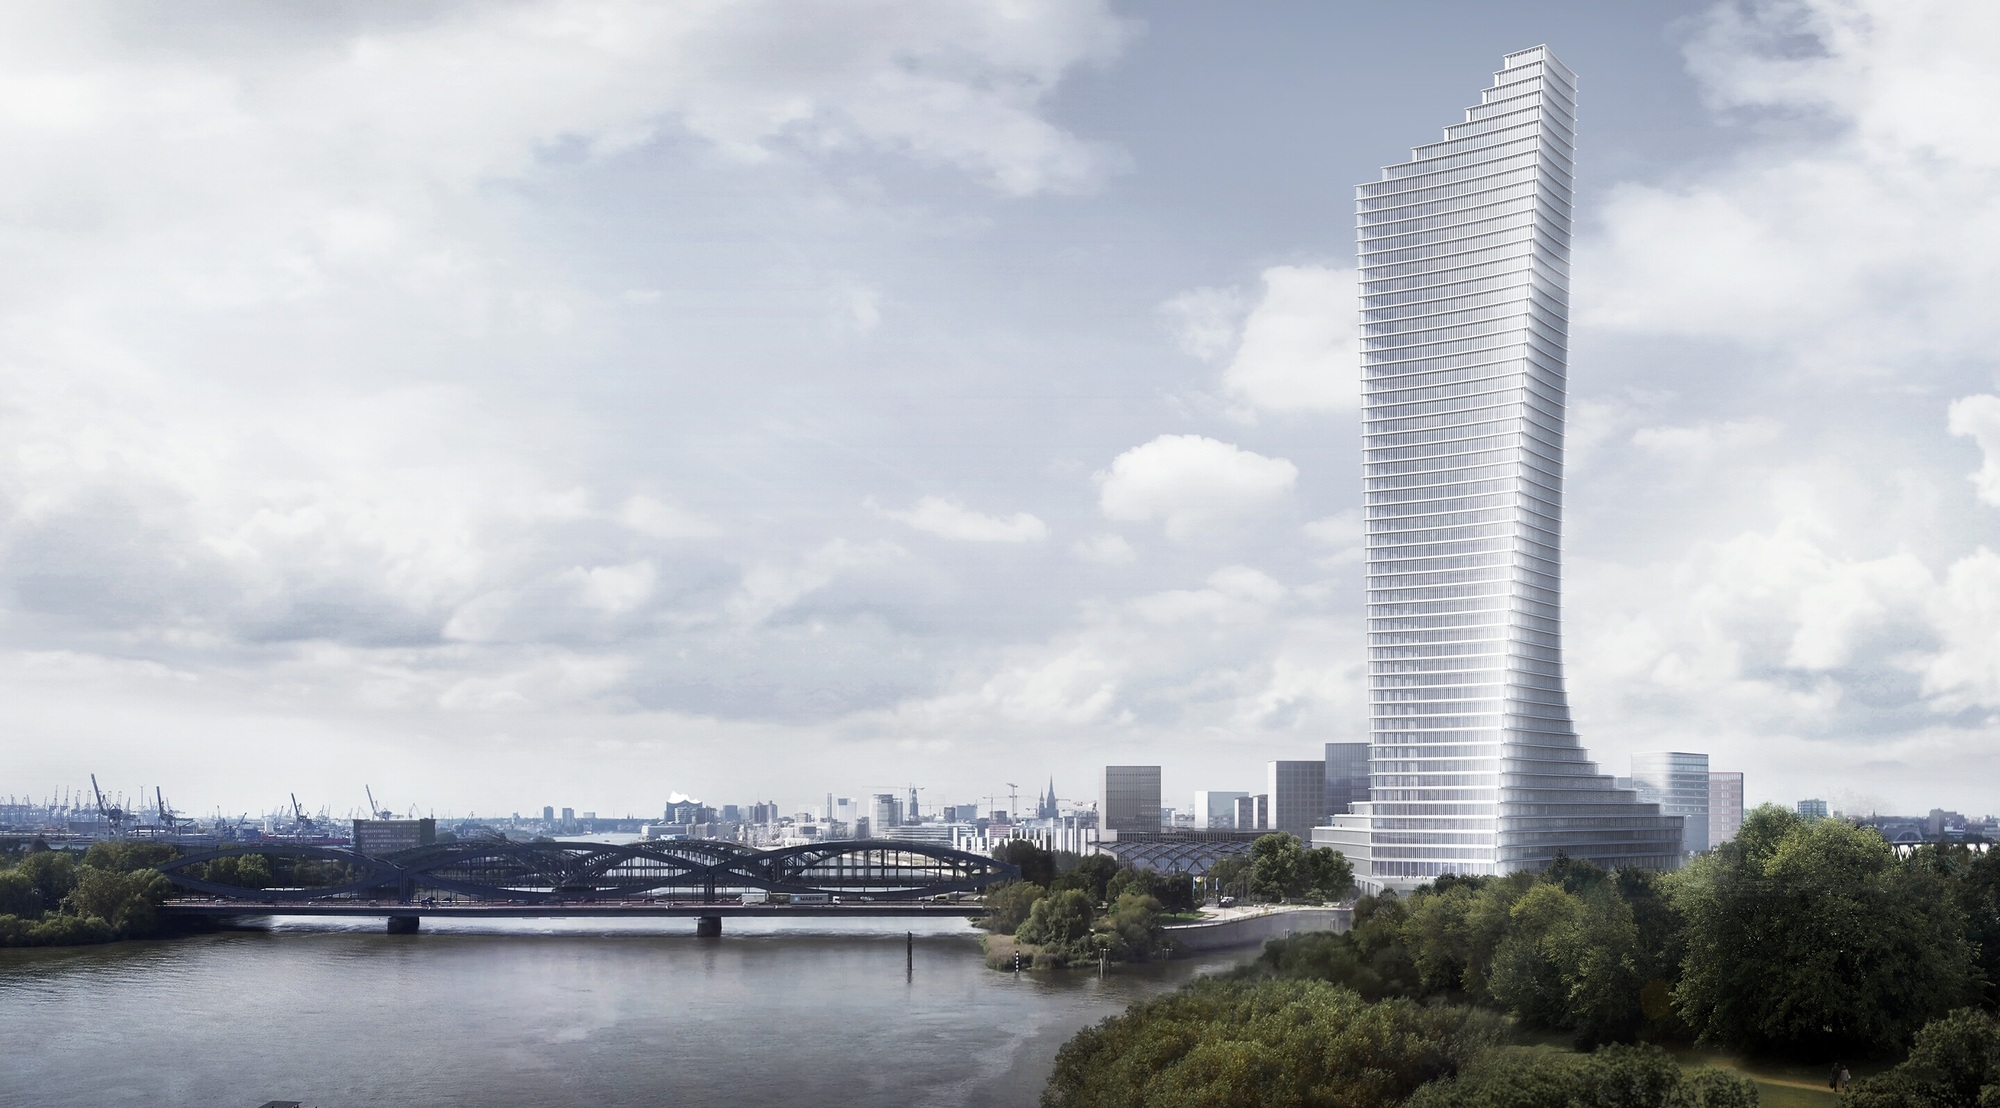 david chipperfield architects selected to design tallest tower in hamburg archdaily. Black Bedroom Furniture Sets. Home Design Ideas